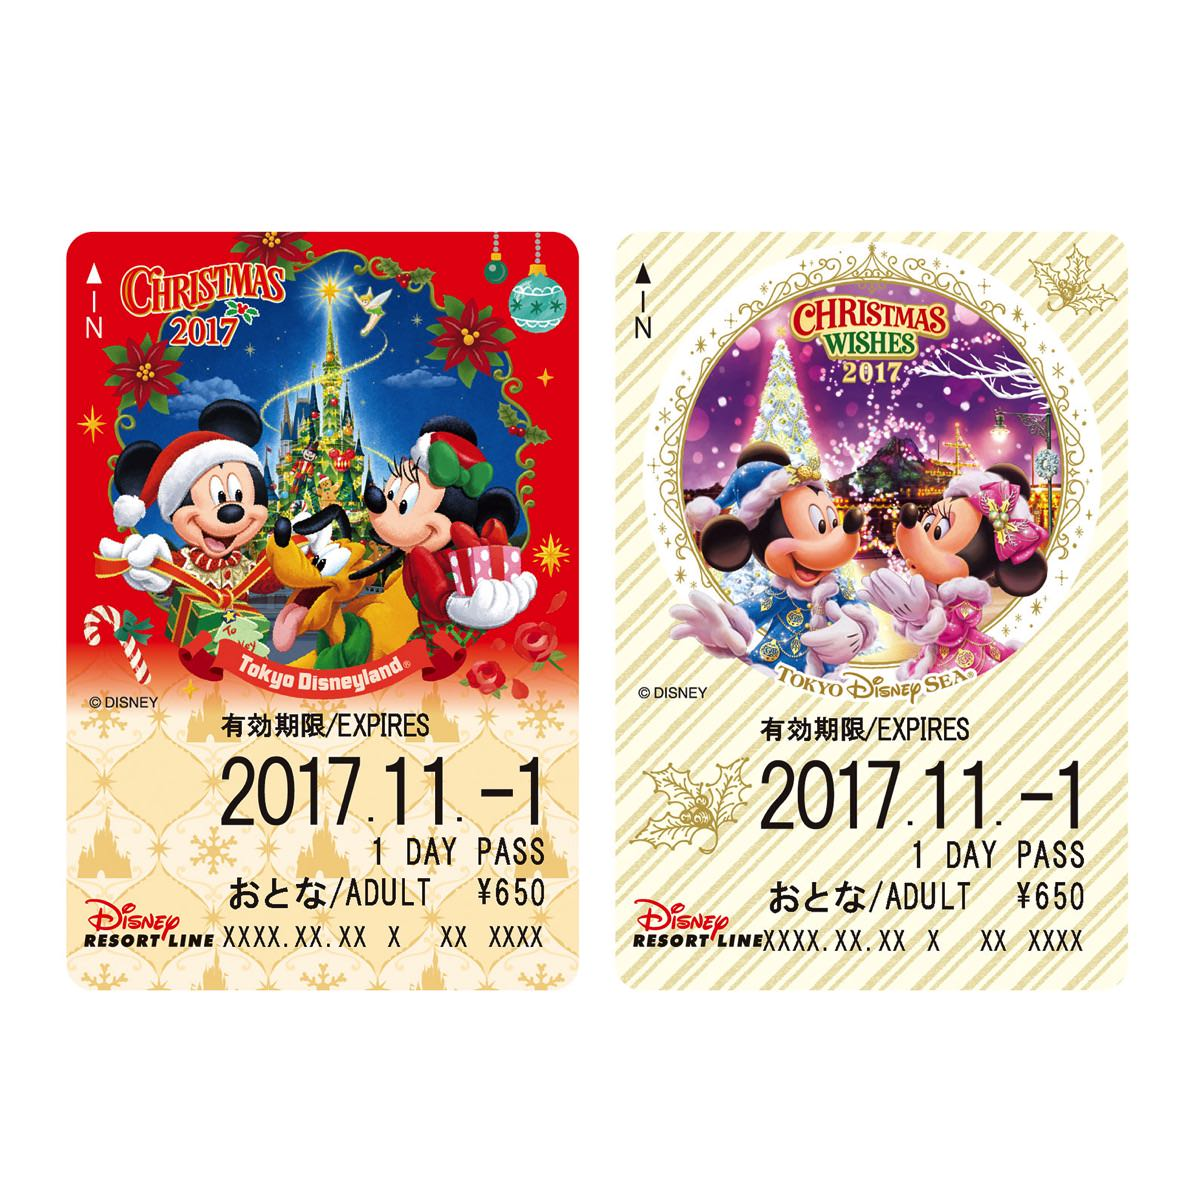 Tdr christmas resort liner